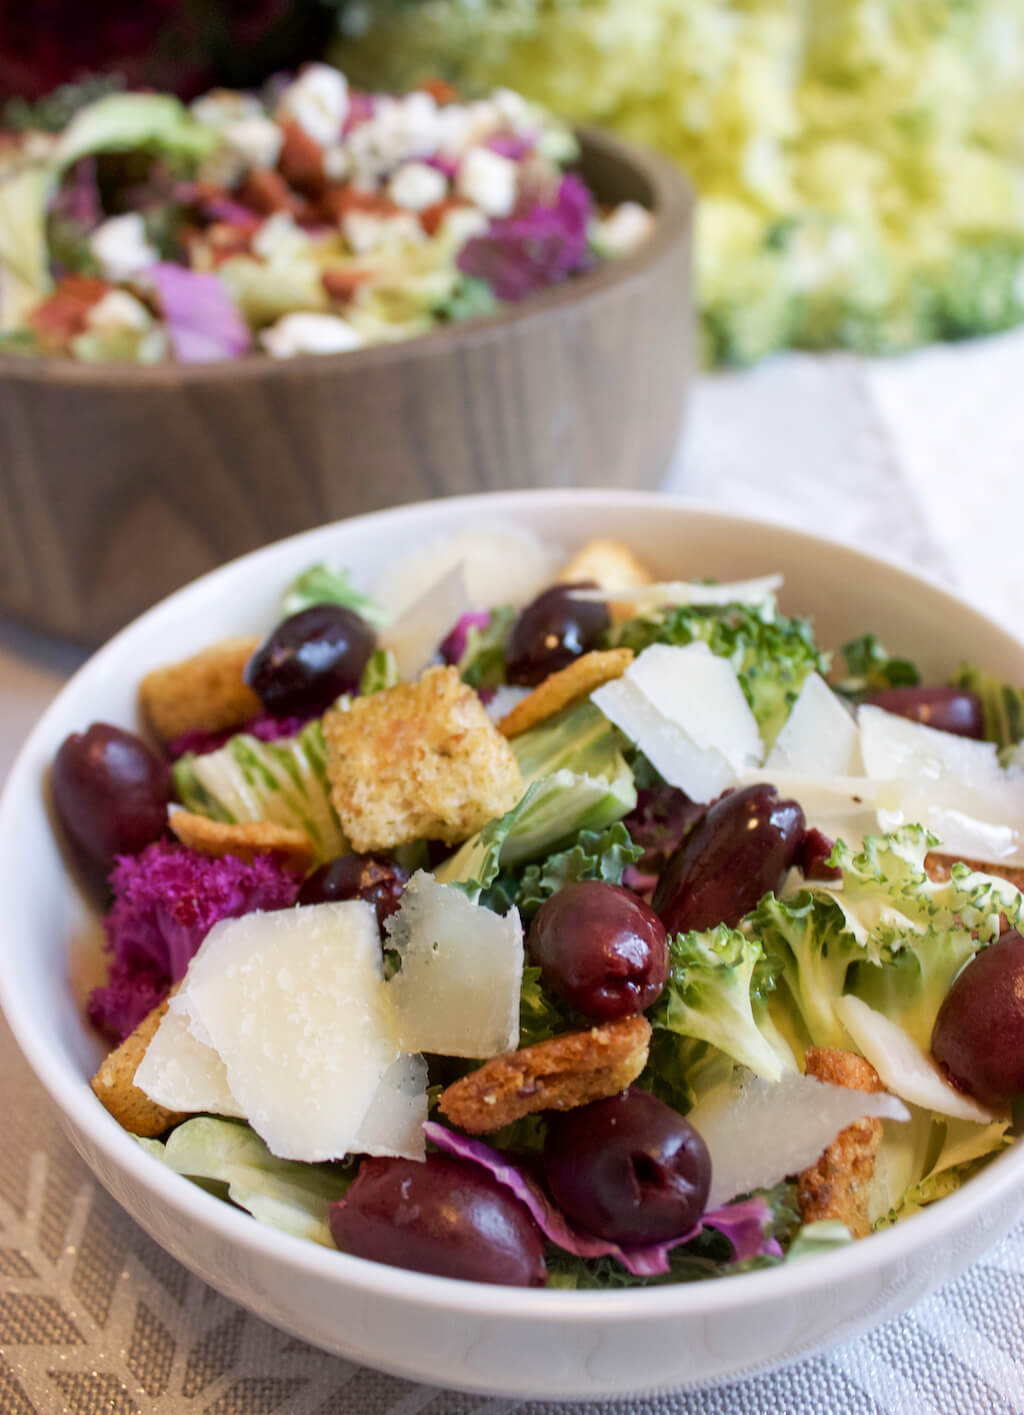 Colorful Salads: Salad Savoy Signature Salad with Mediterranean Vibes